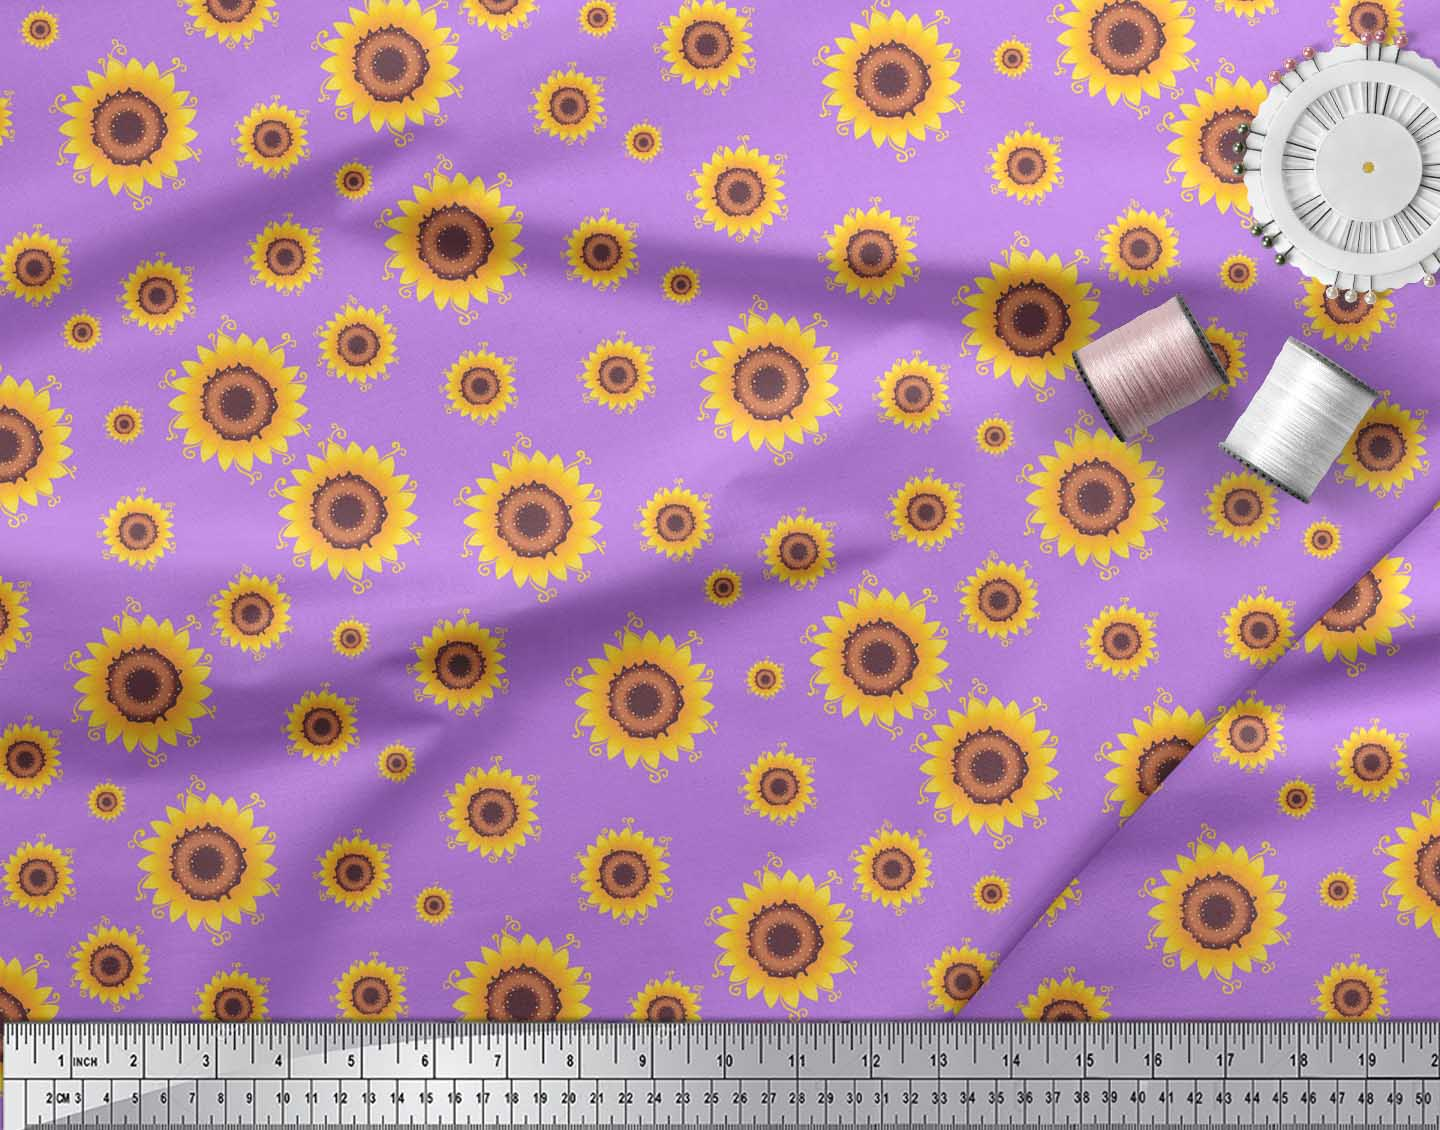 Soimoi-Purple-Cotton-Poplin-Fabric-Sunflower-Floral-Print-Fabric-Hwy thumbnail 3